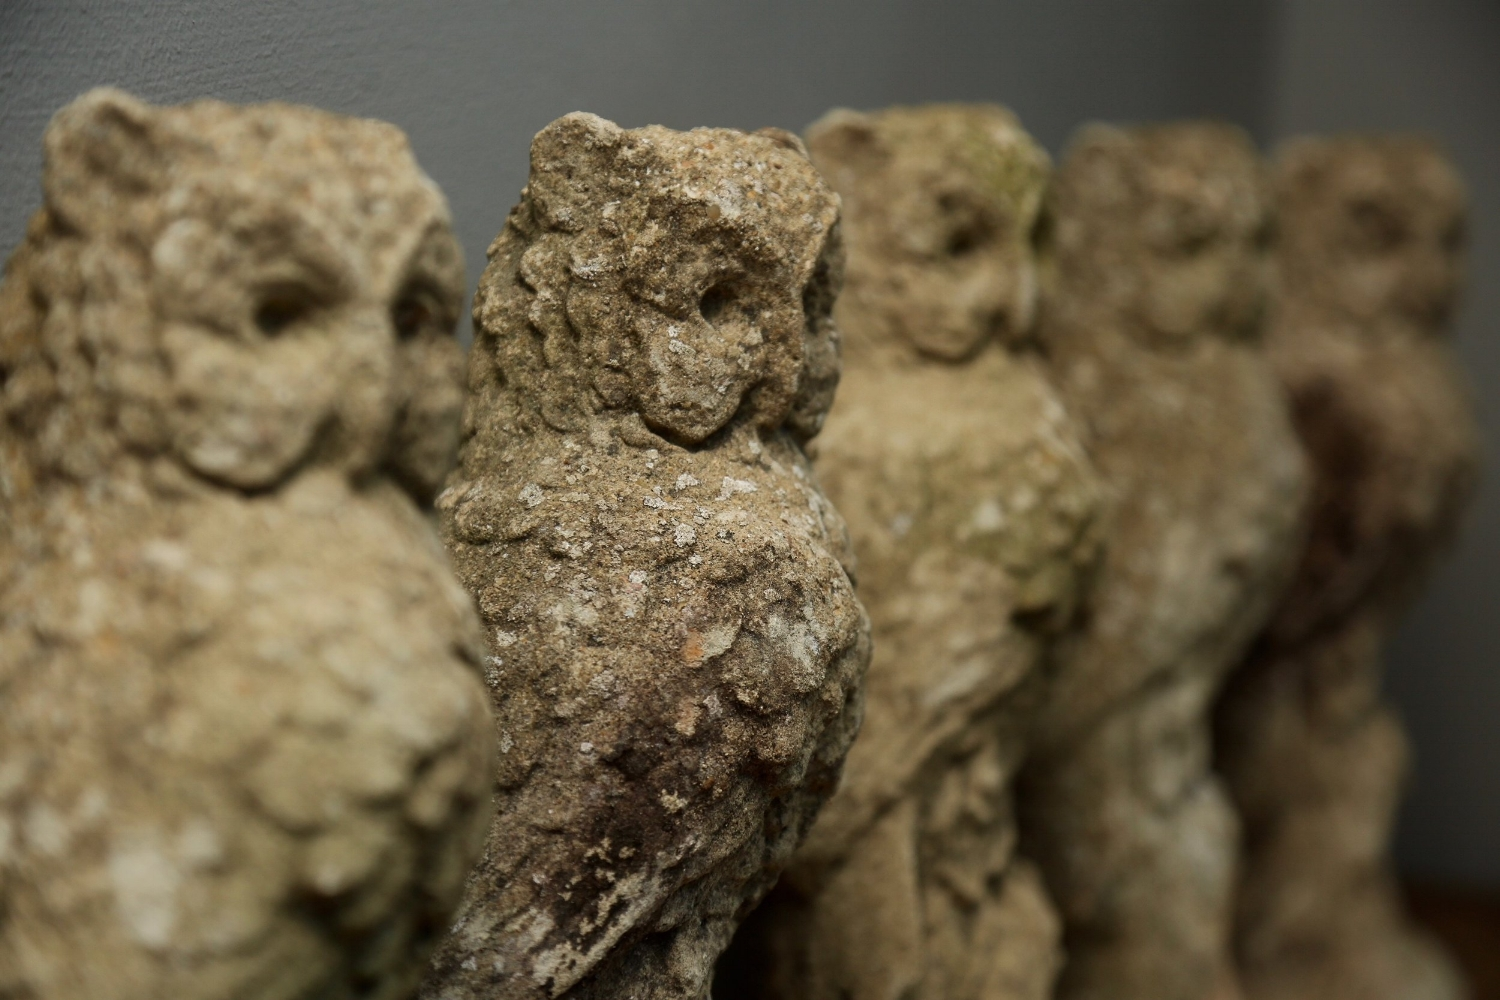 Vagabond Antiques – a Parliament of stone owls